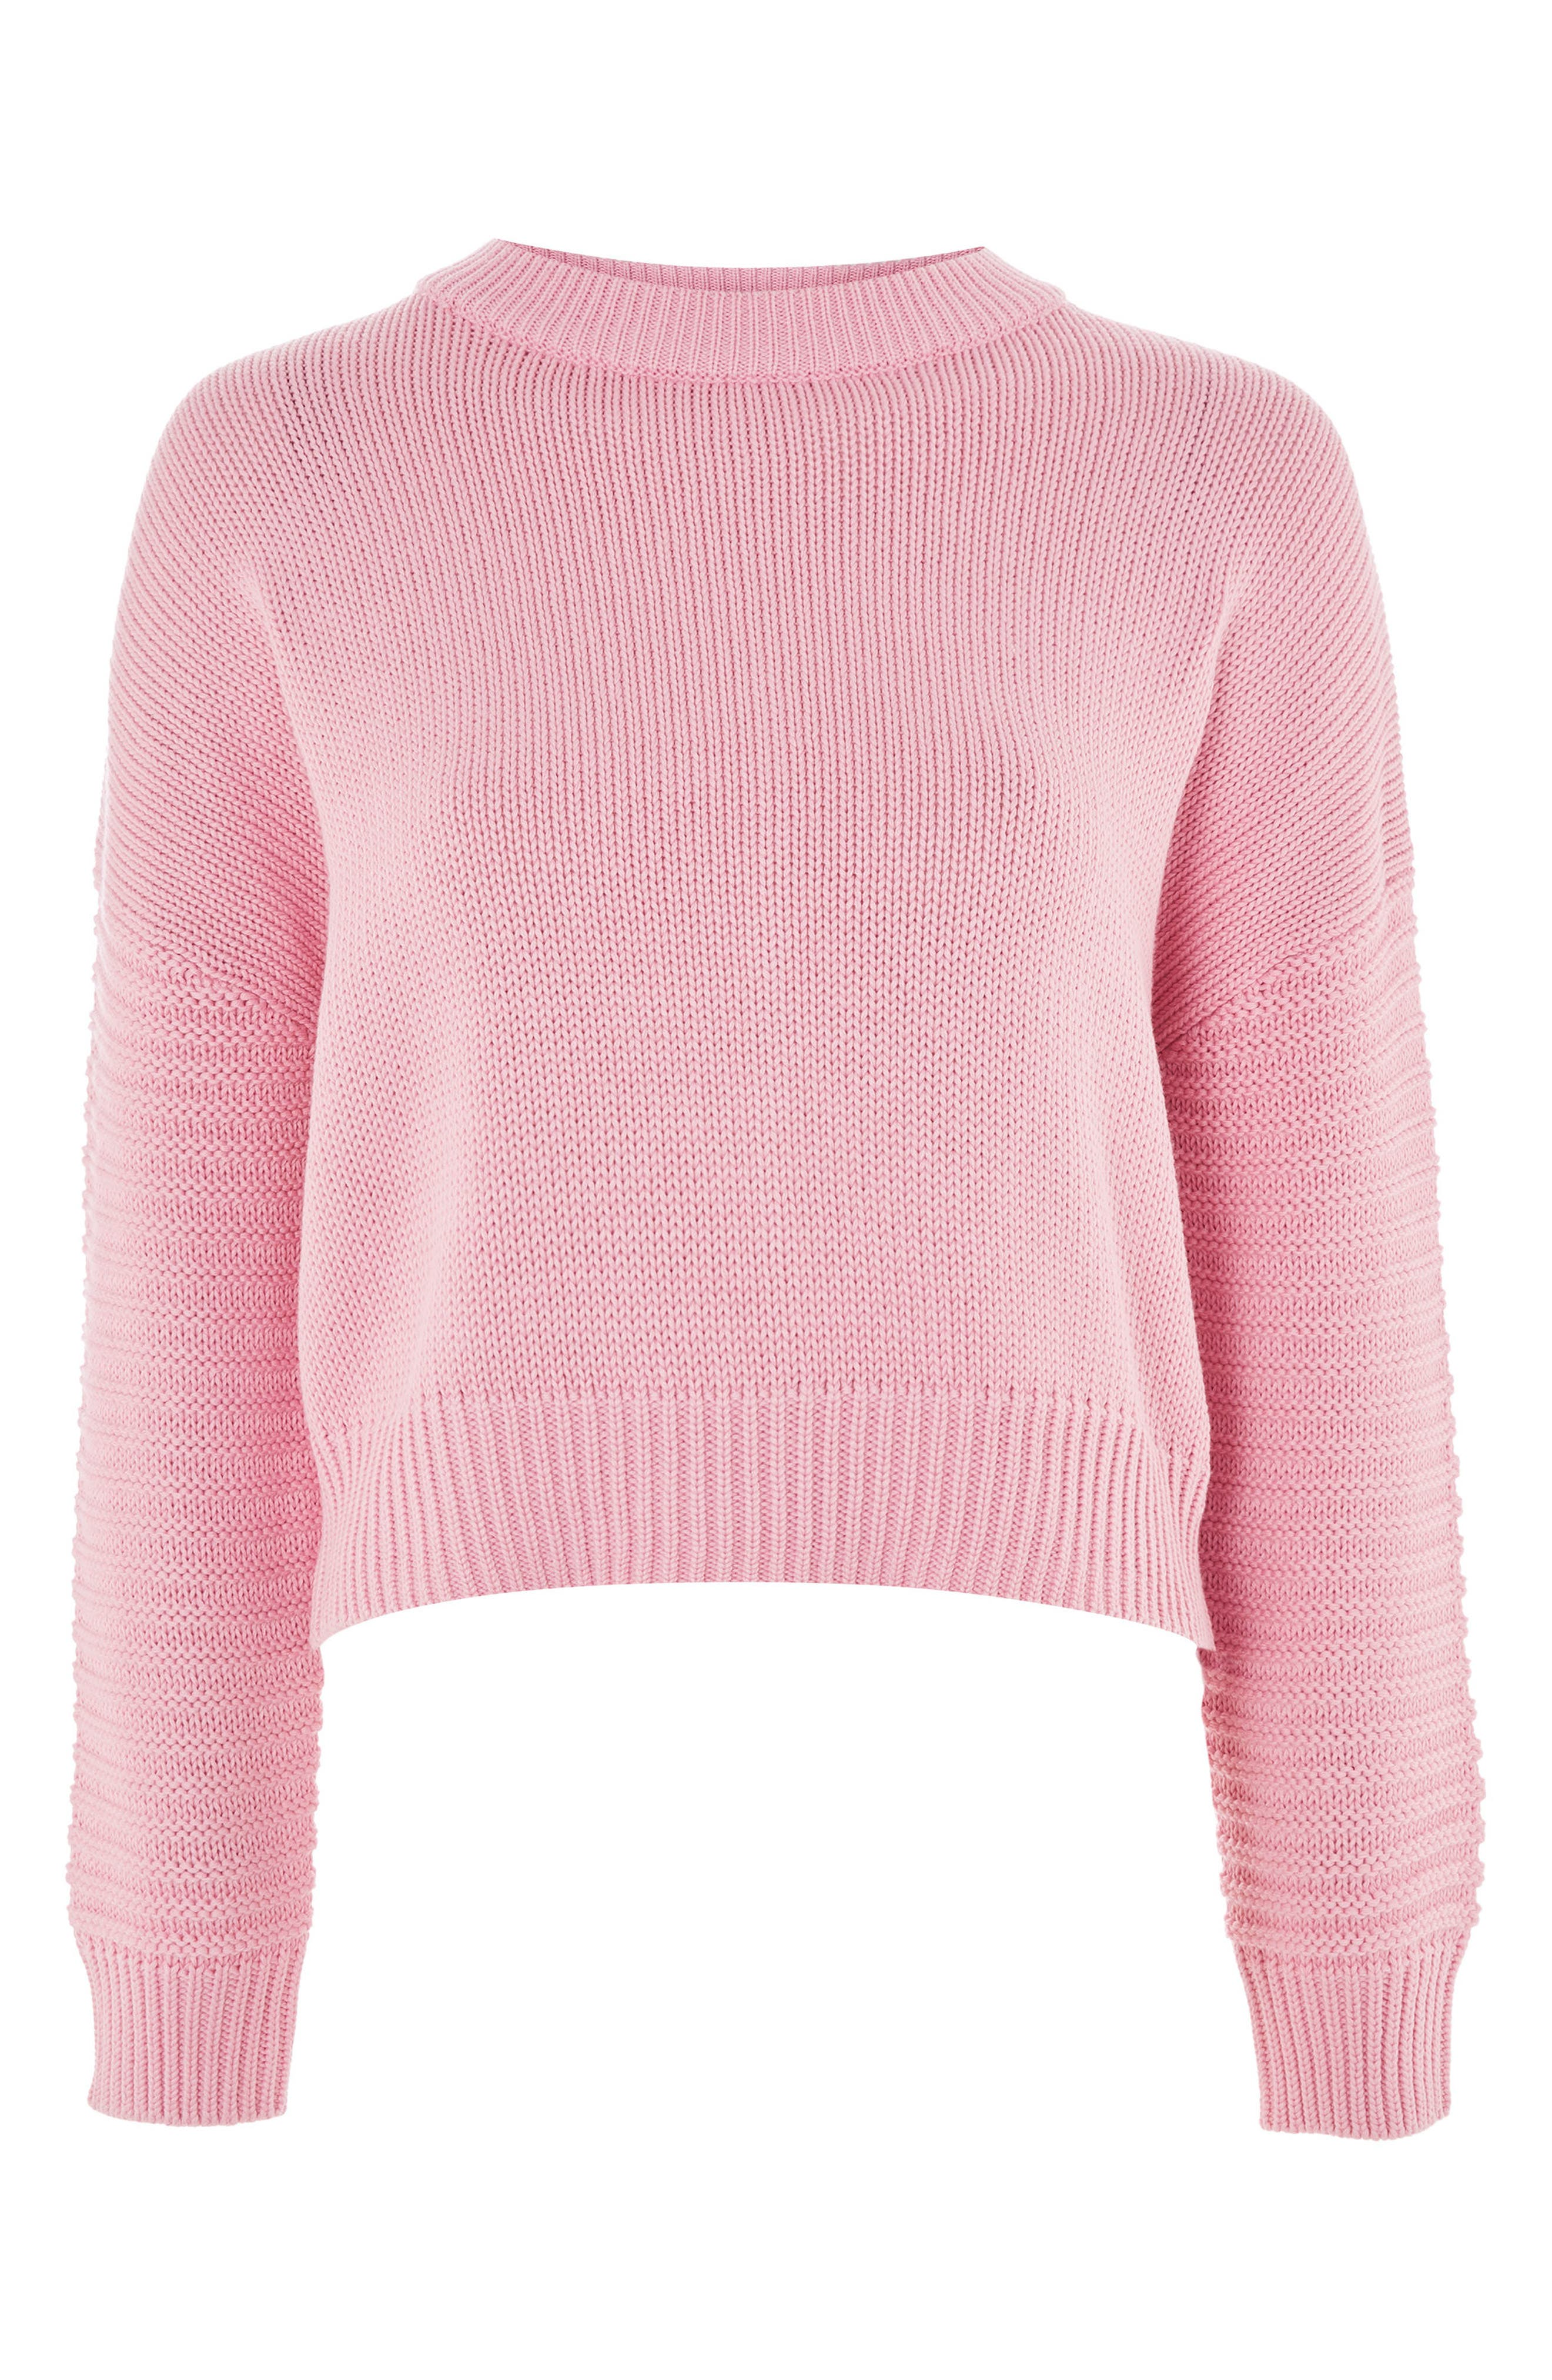 Stitch Detail Sleeve Sweater,                             Alternate thumbnail 4, color,                             Pink